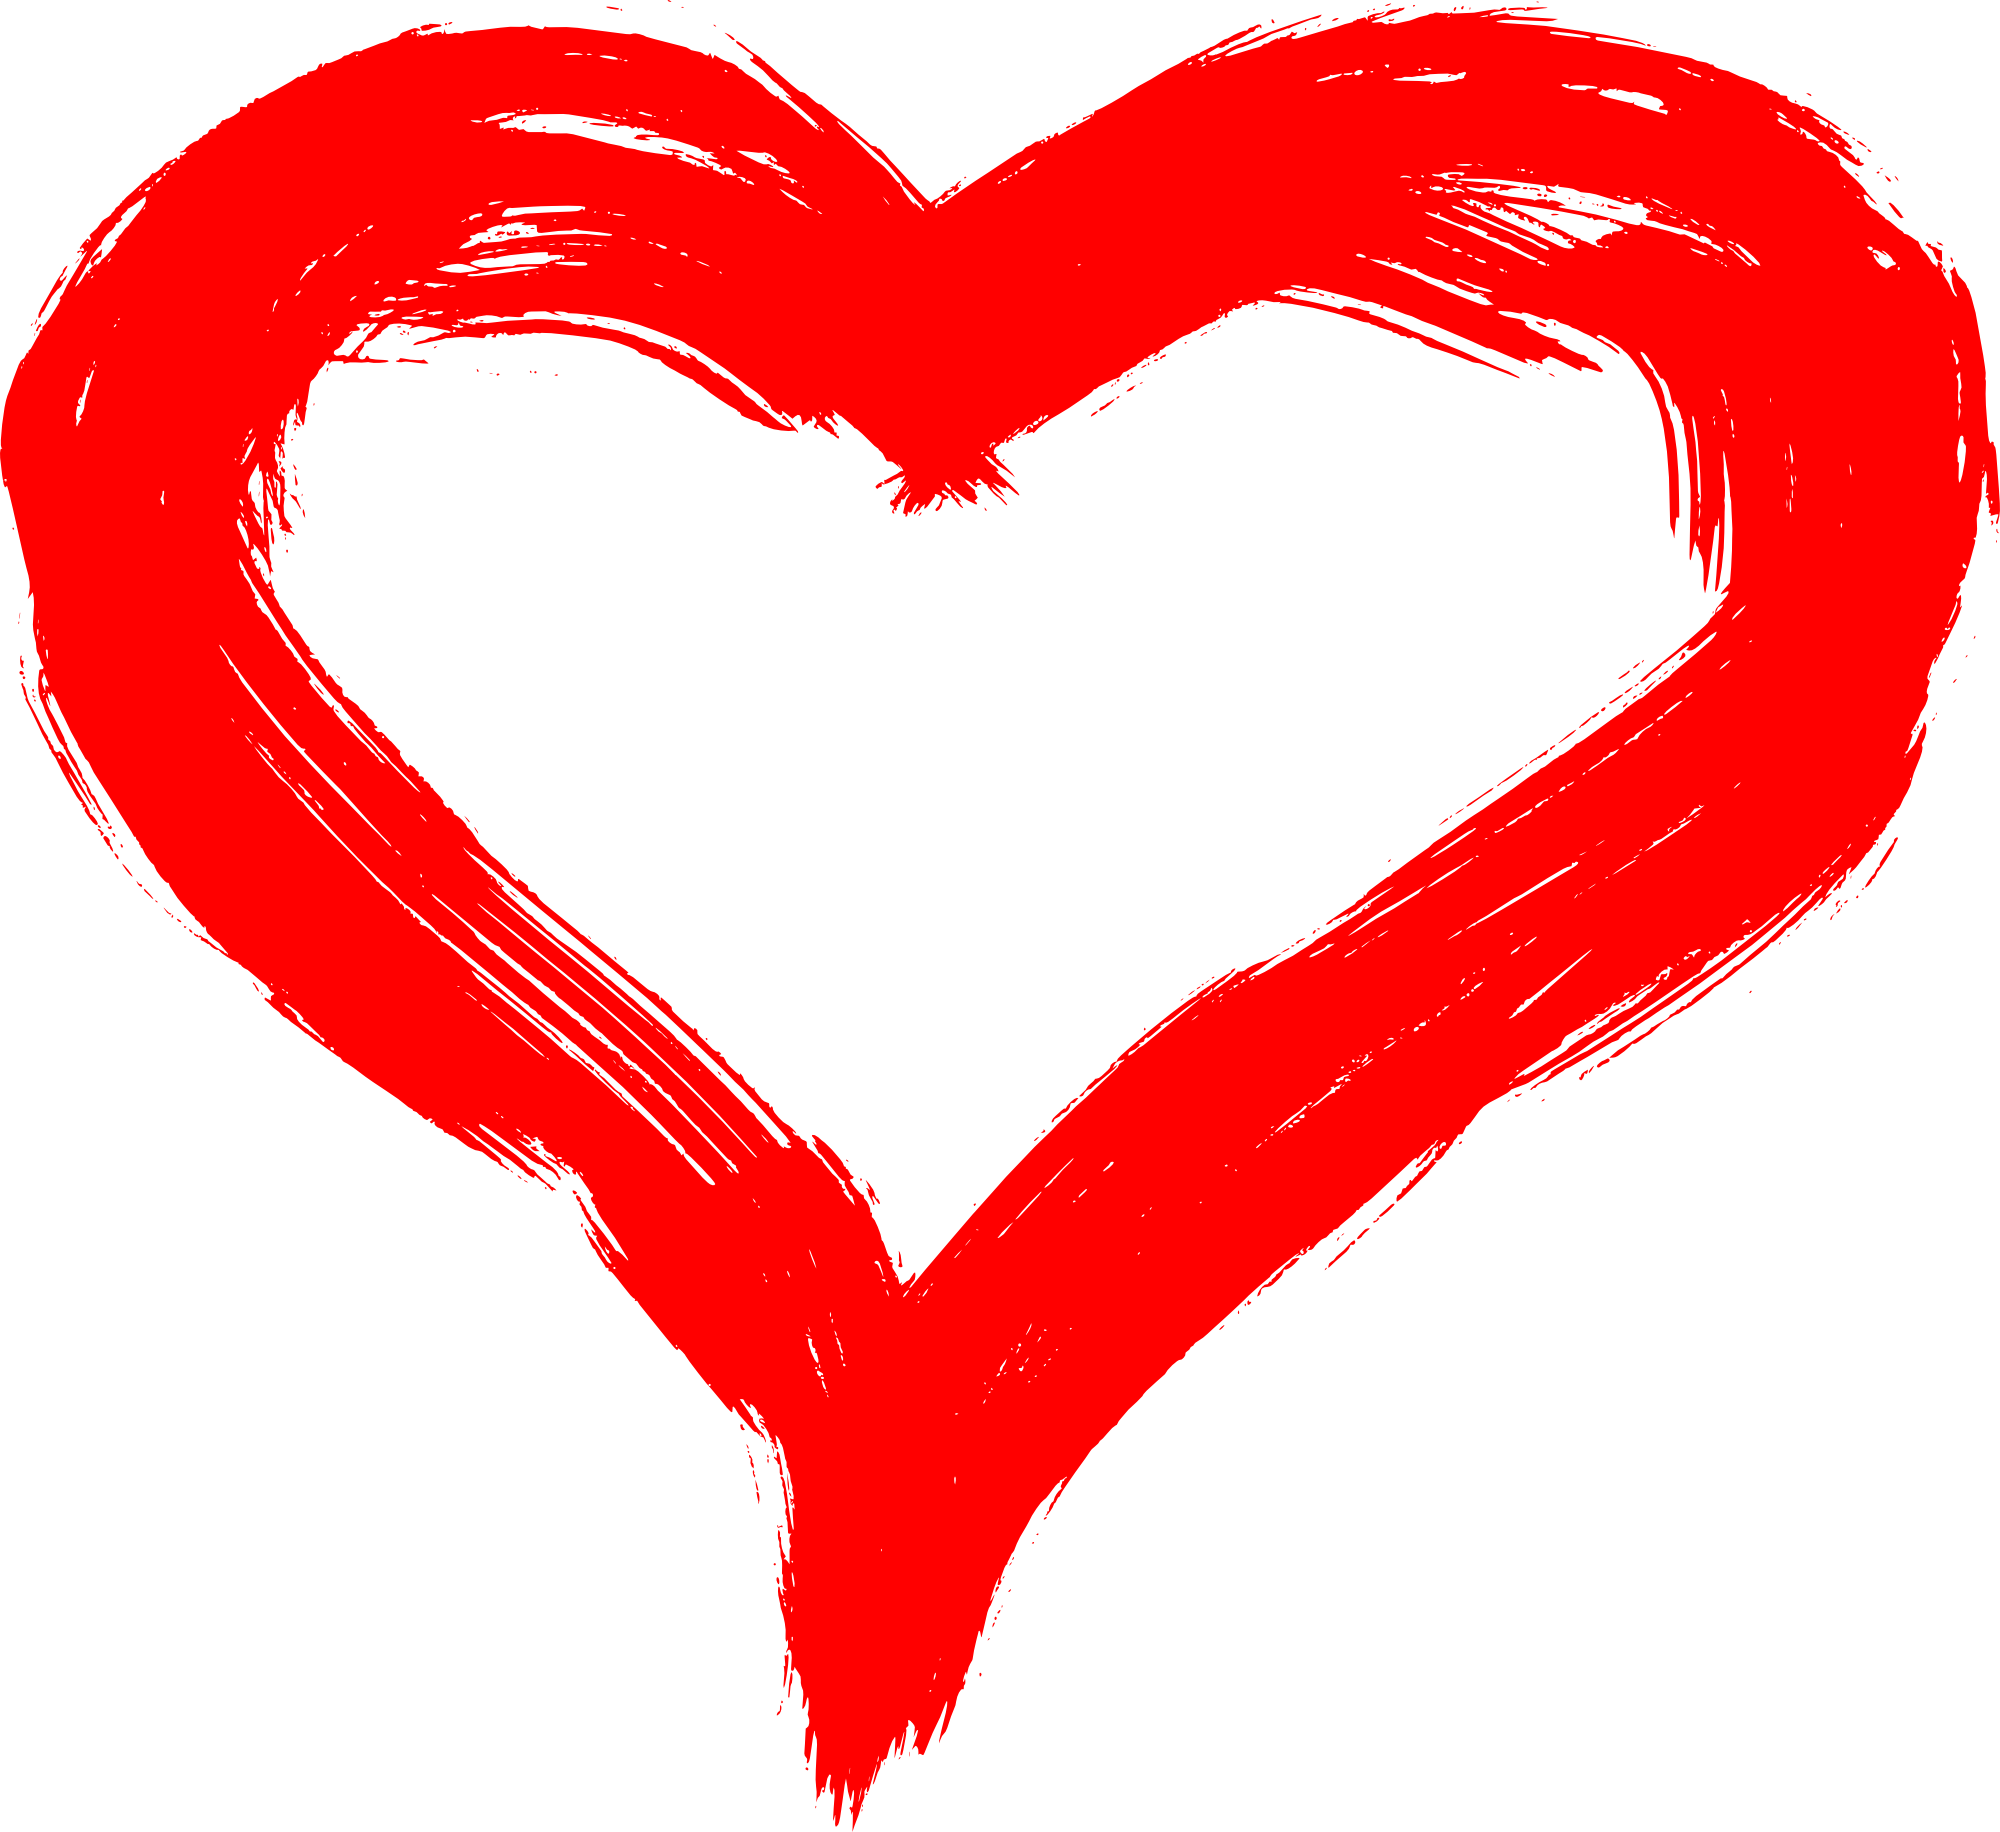 Hearts png transparent. Heart available in different